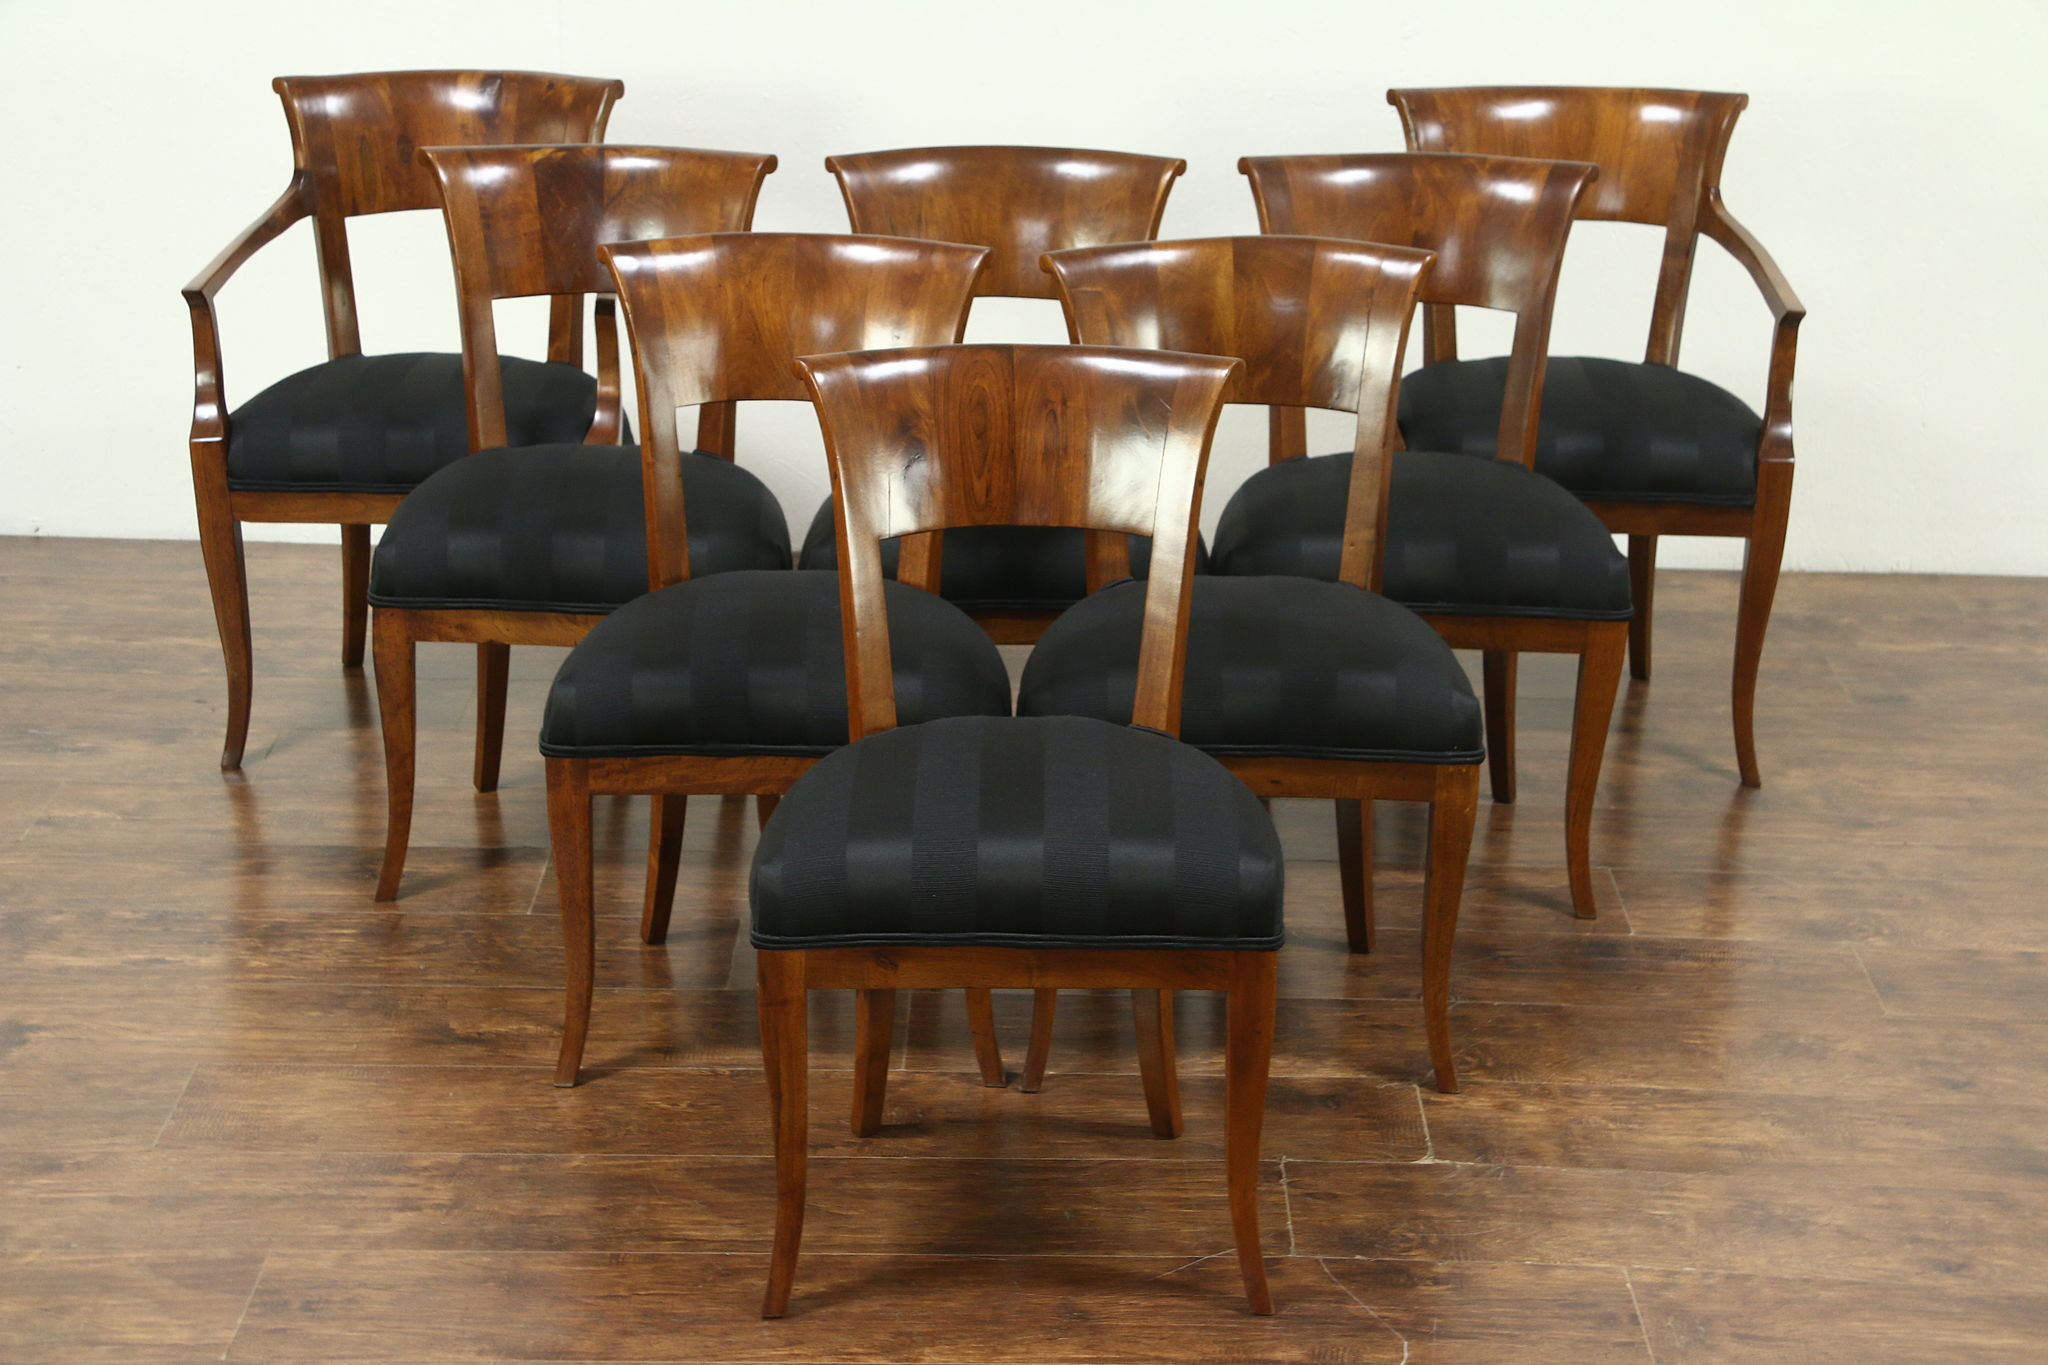 Art Deco Dining Chairs Set Of 8 Italian Art Deco 1925 Vintage Walnut Dining Chairs New Upholstery